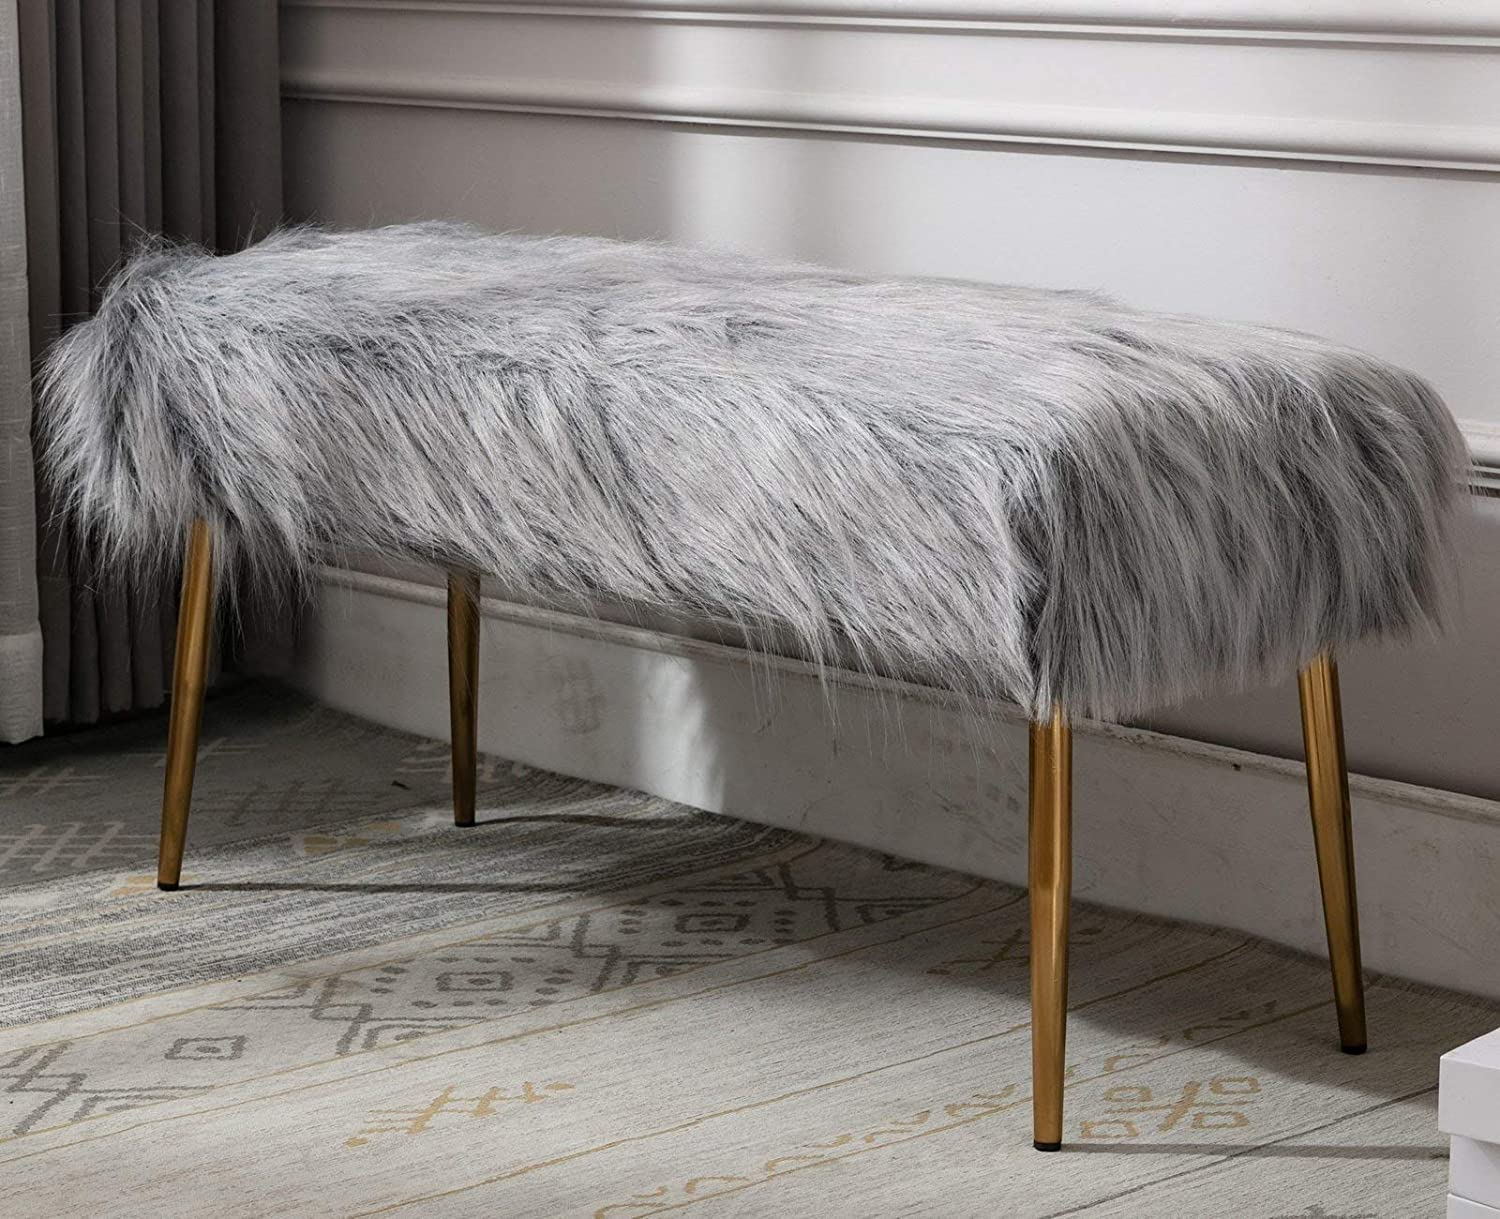 wahson faux fur long entryway bench ottoman foot rest stool seat modern contemporary fluffy bench for bedroom and dining gold metal legs 35 l x